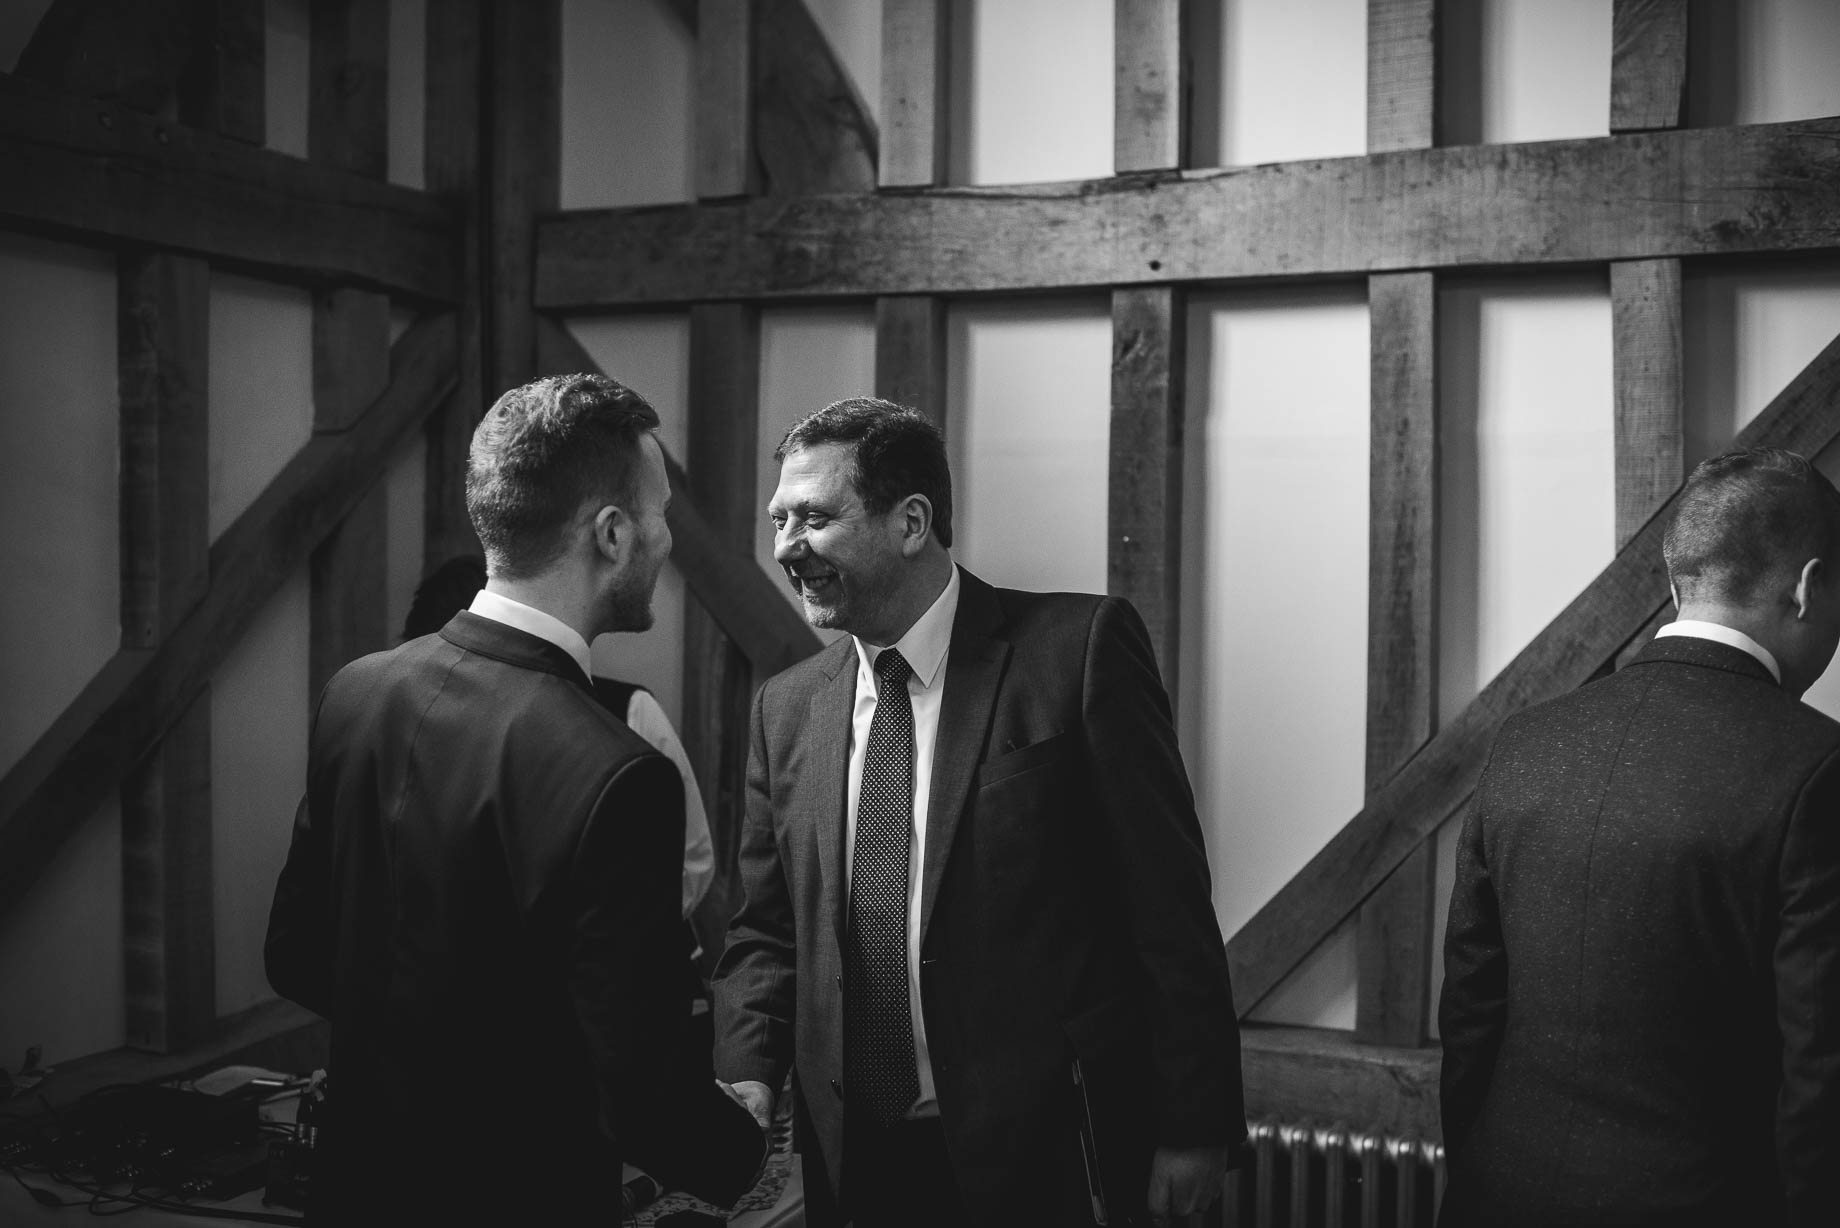 Surrey Wedding Photography by Guy Collier - Becca and James (24 of 145)